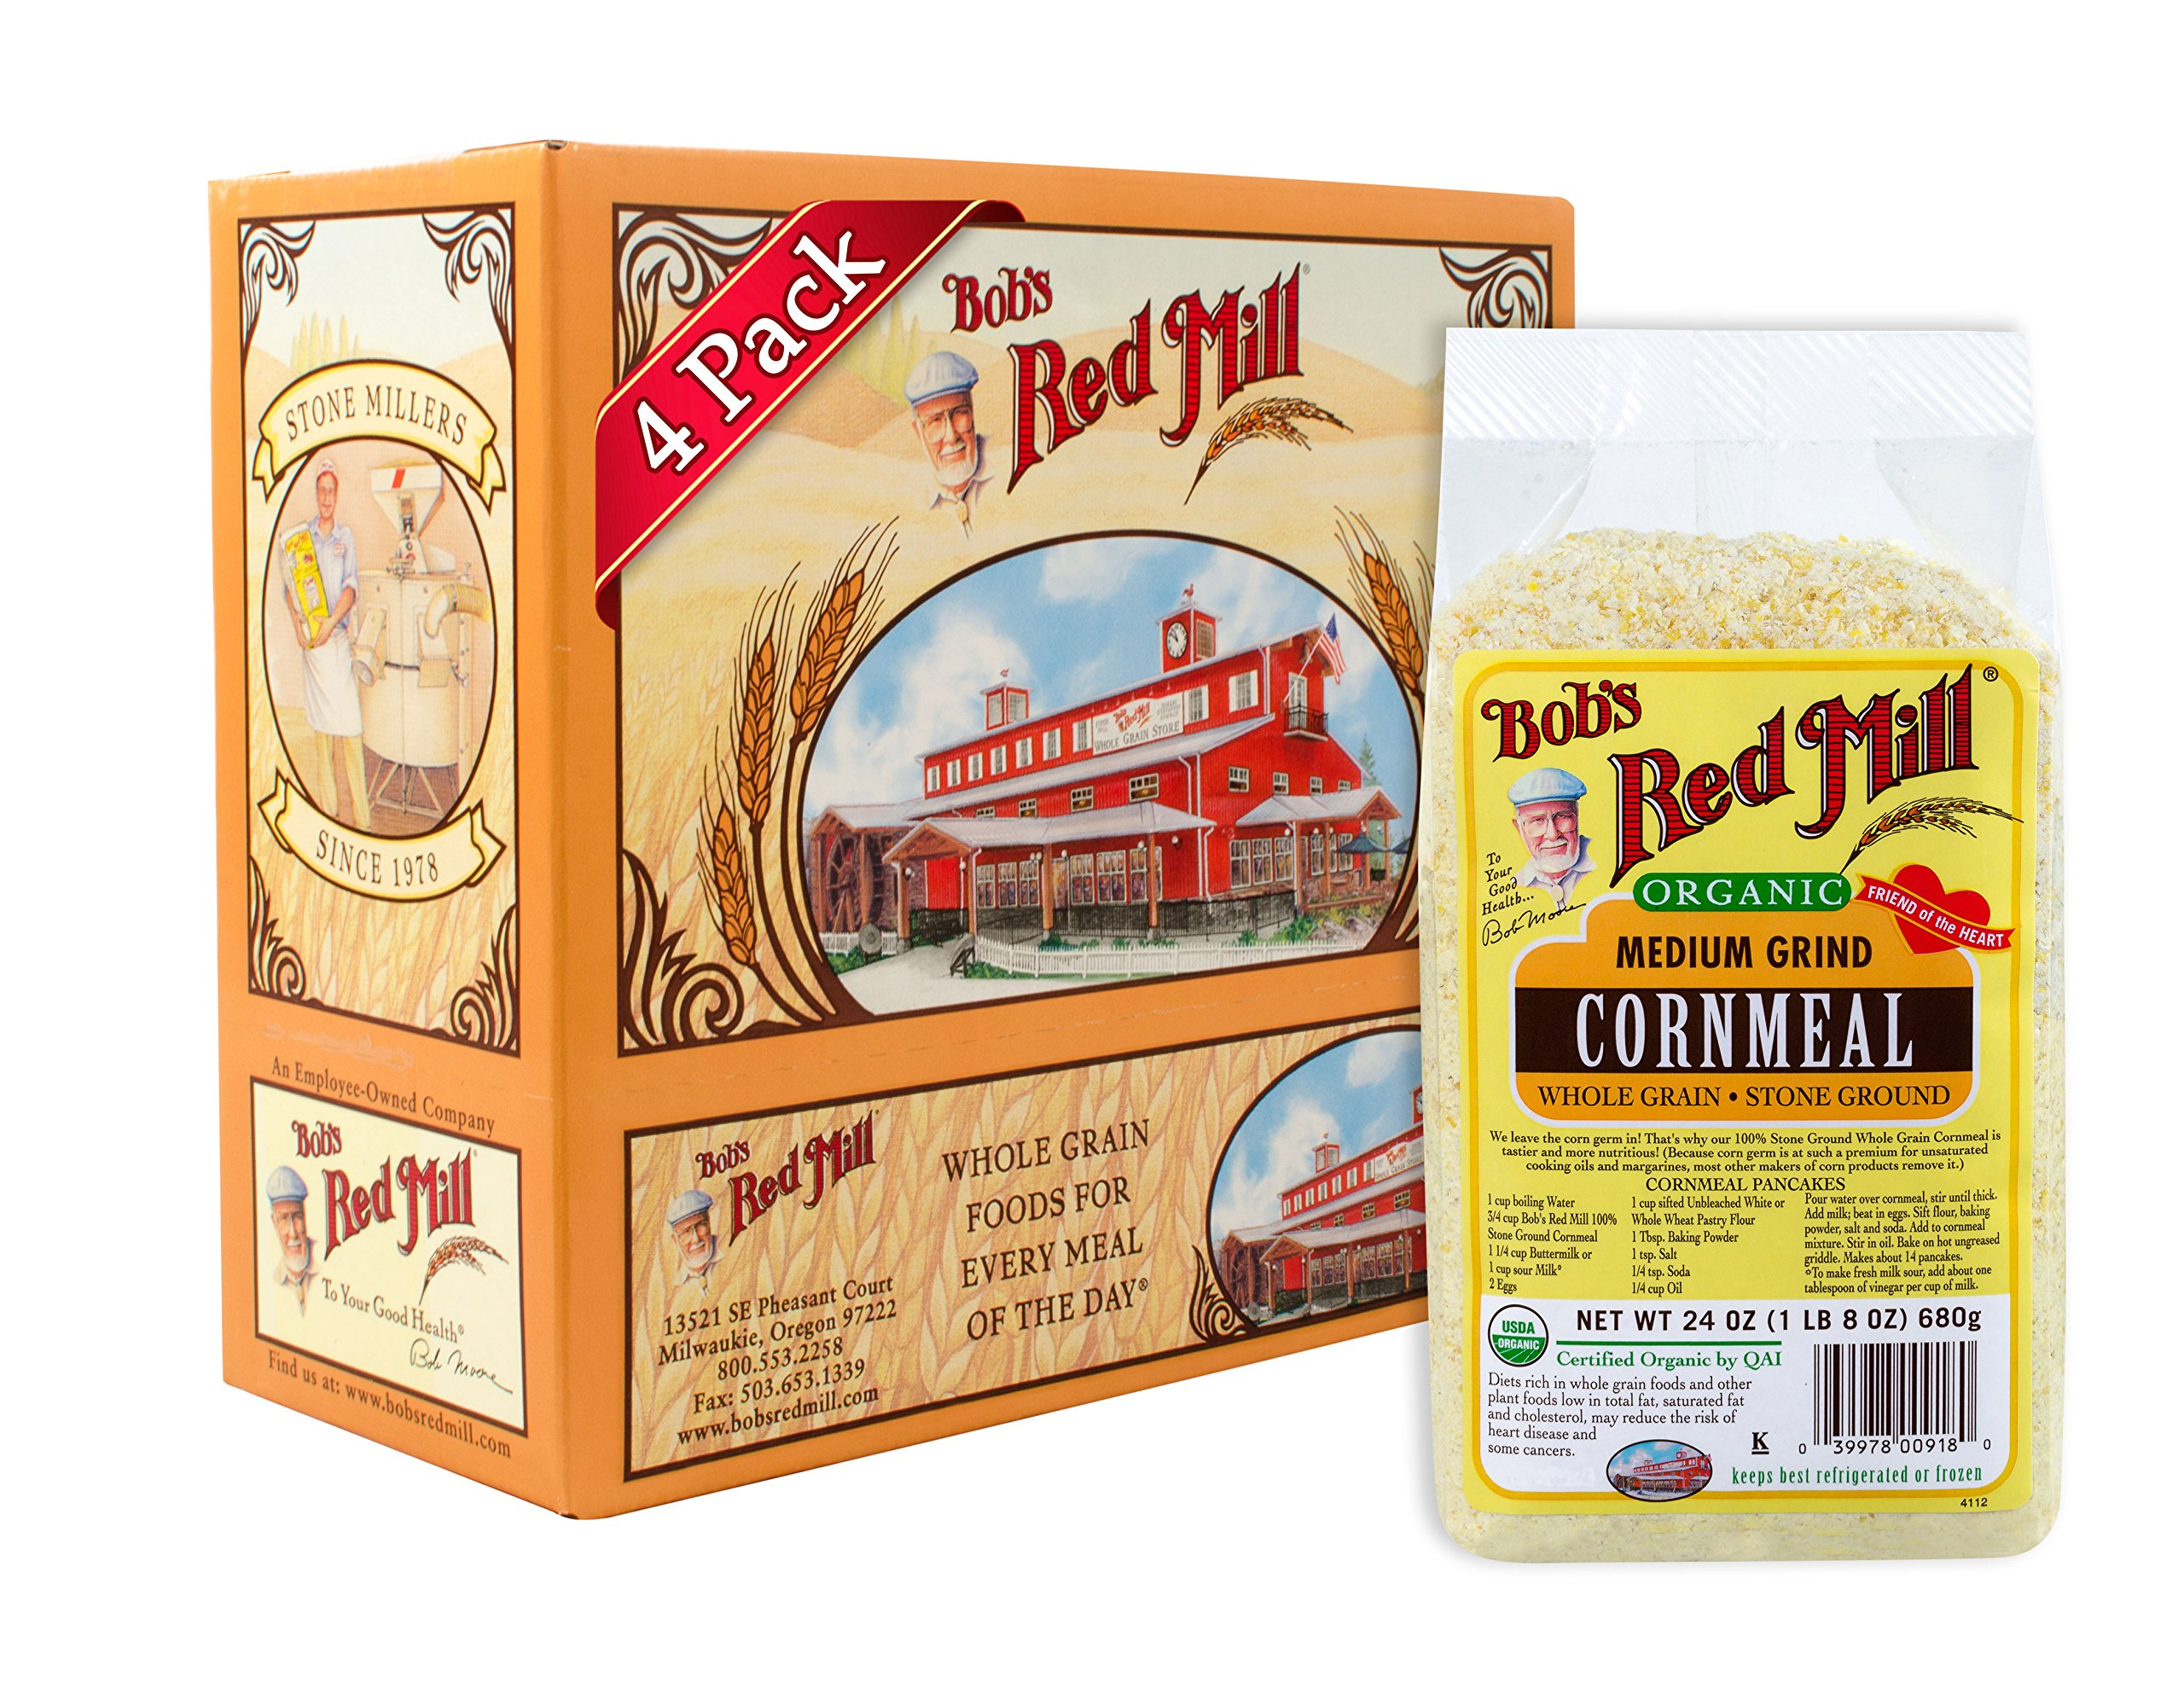 Bob's Red Mill Organic Medium Grind Cornmeal, 24-ounce (Pack of 4)